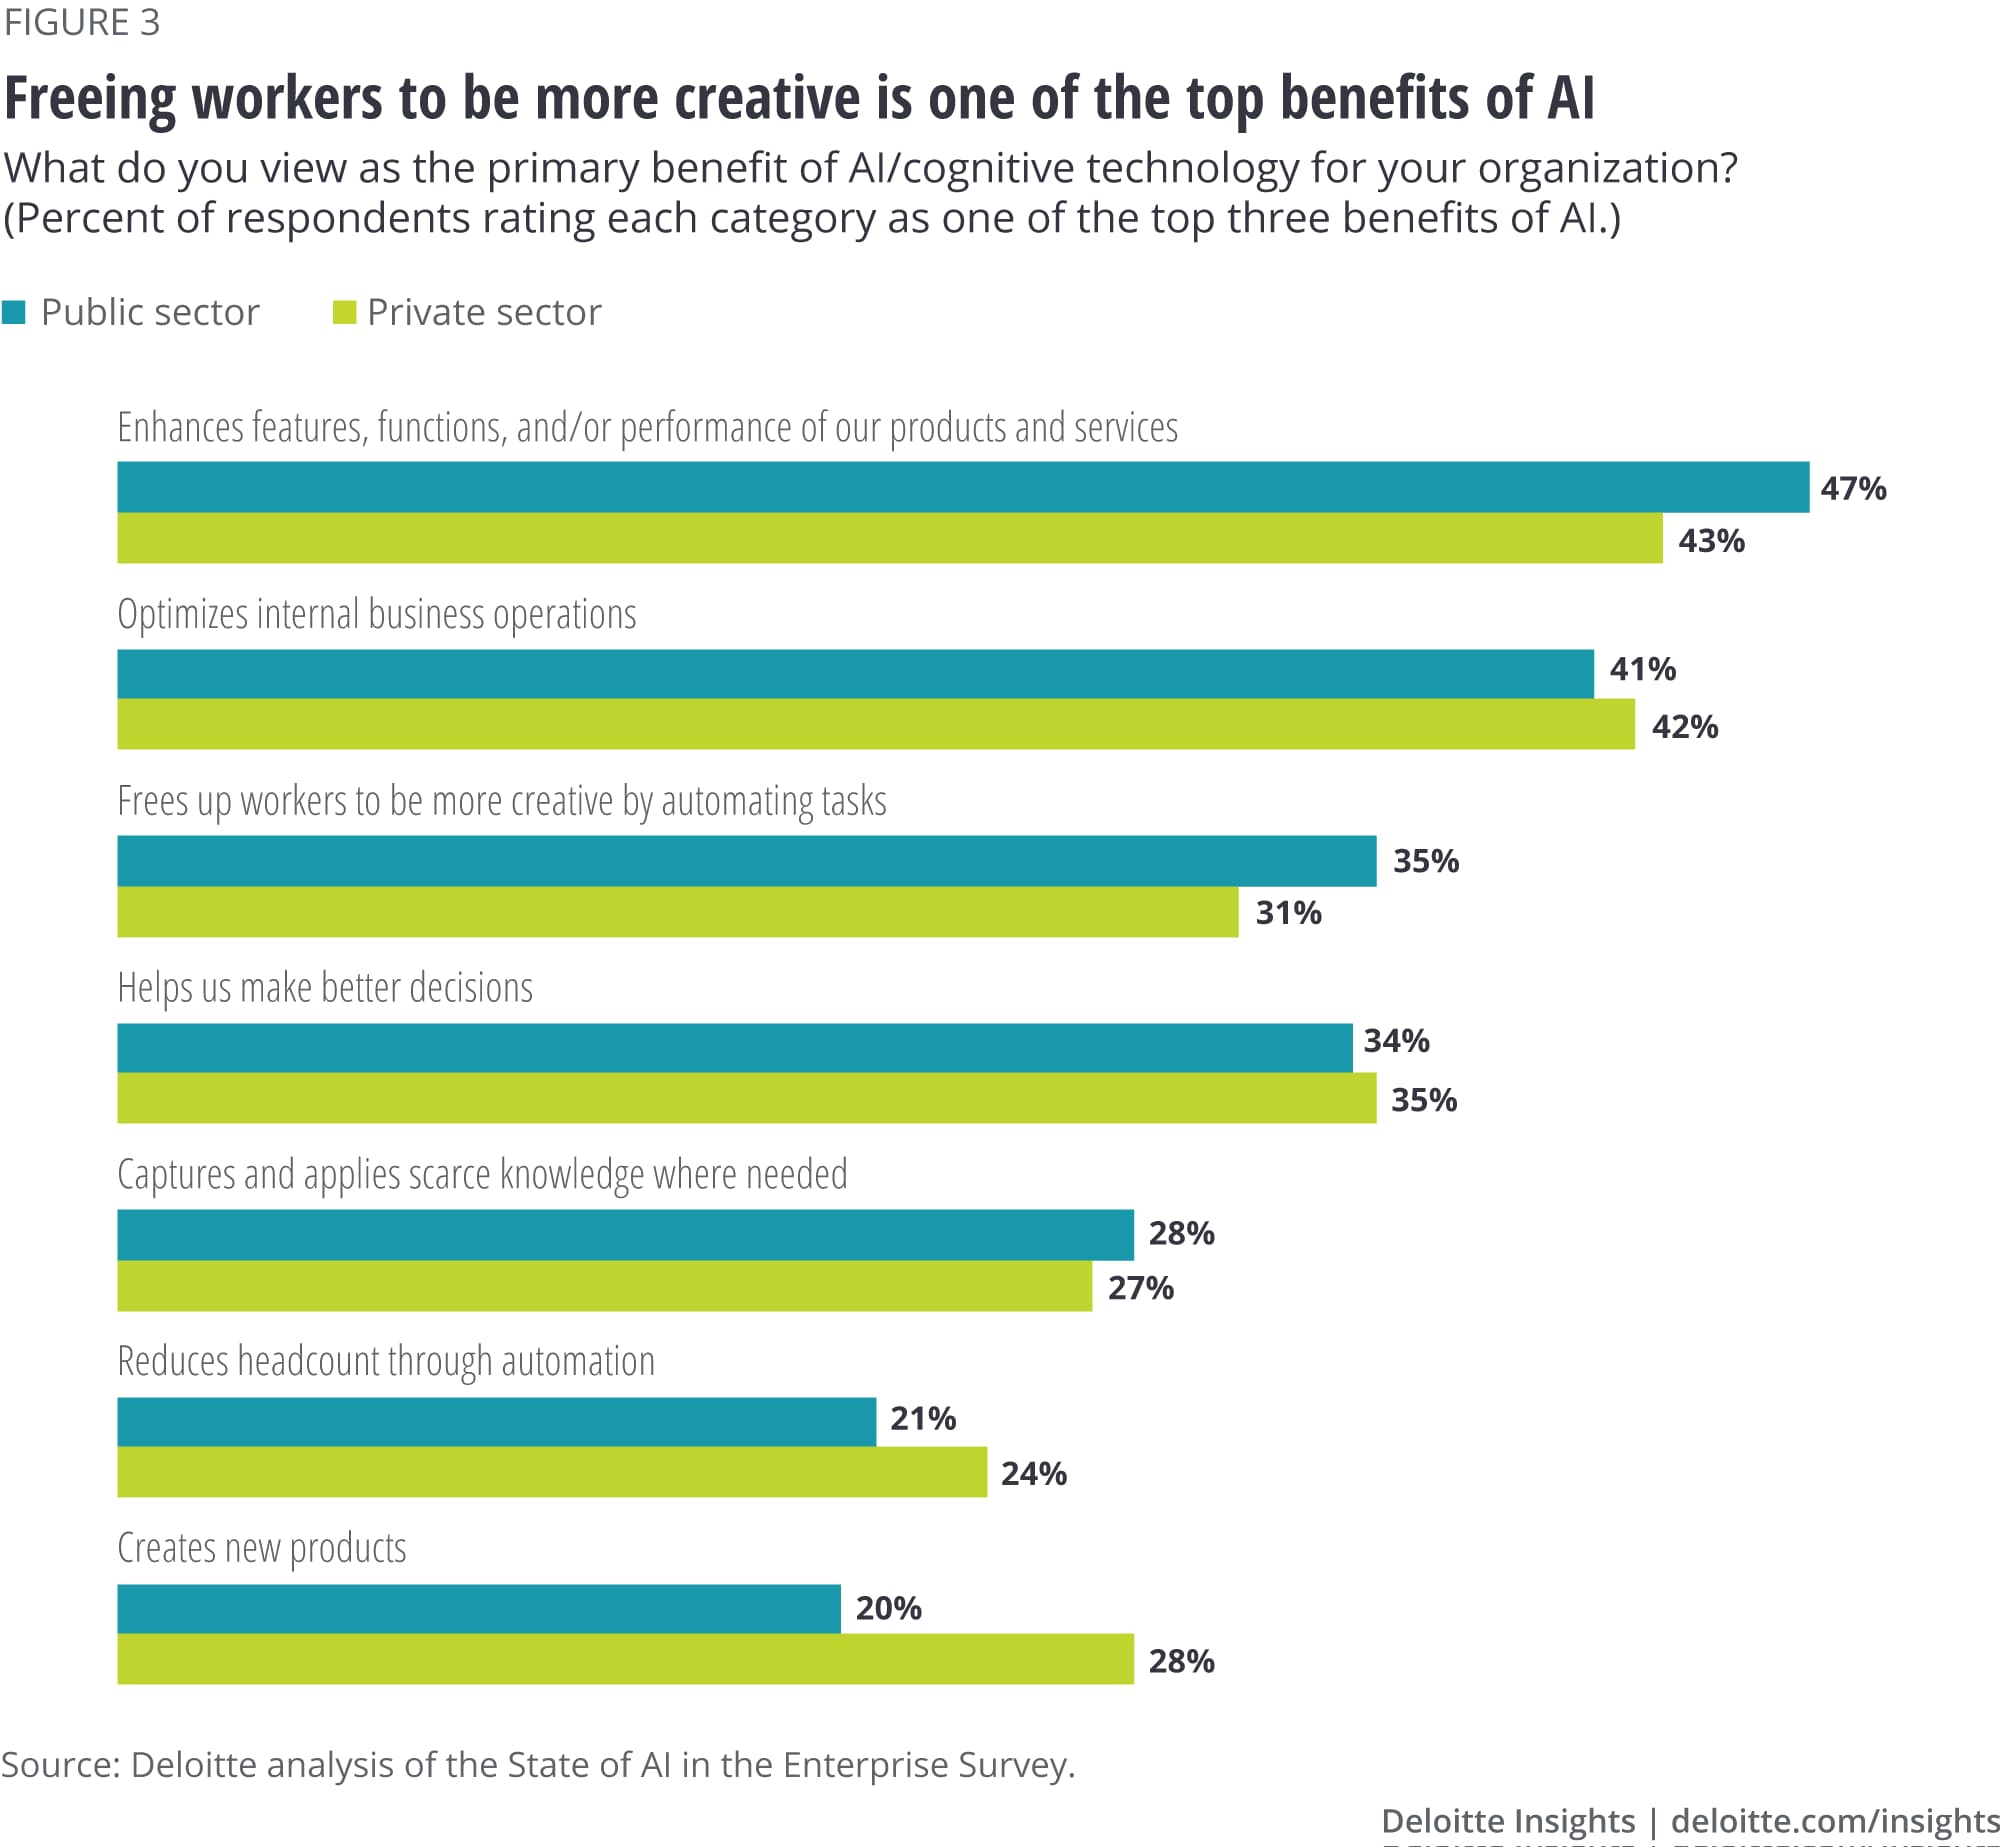 Freeing workers to be more creative is one of the top benefits of AI